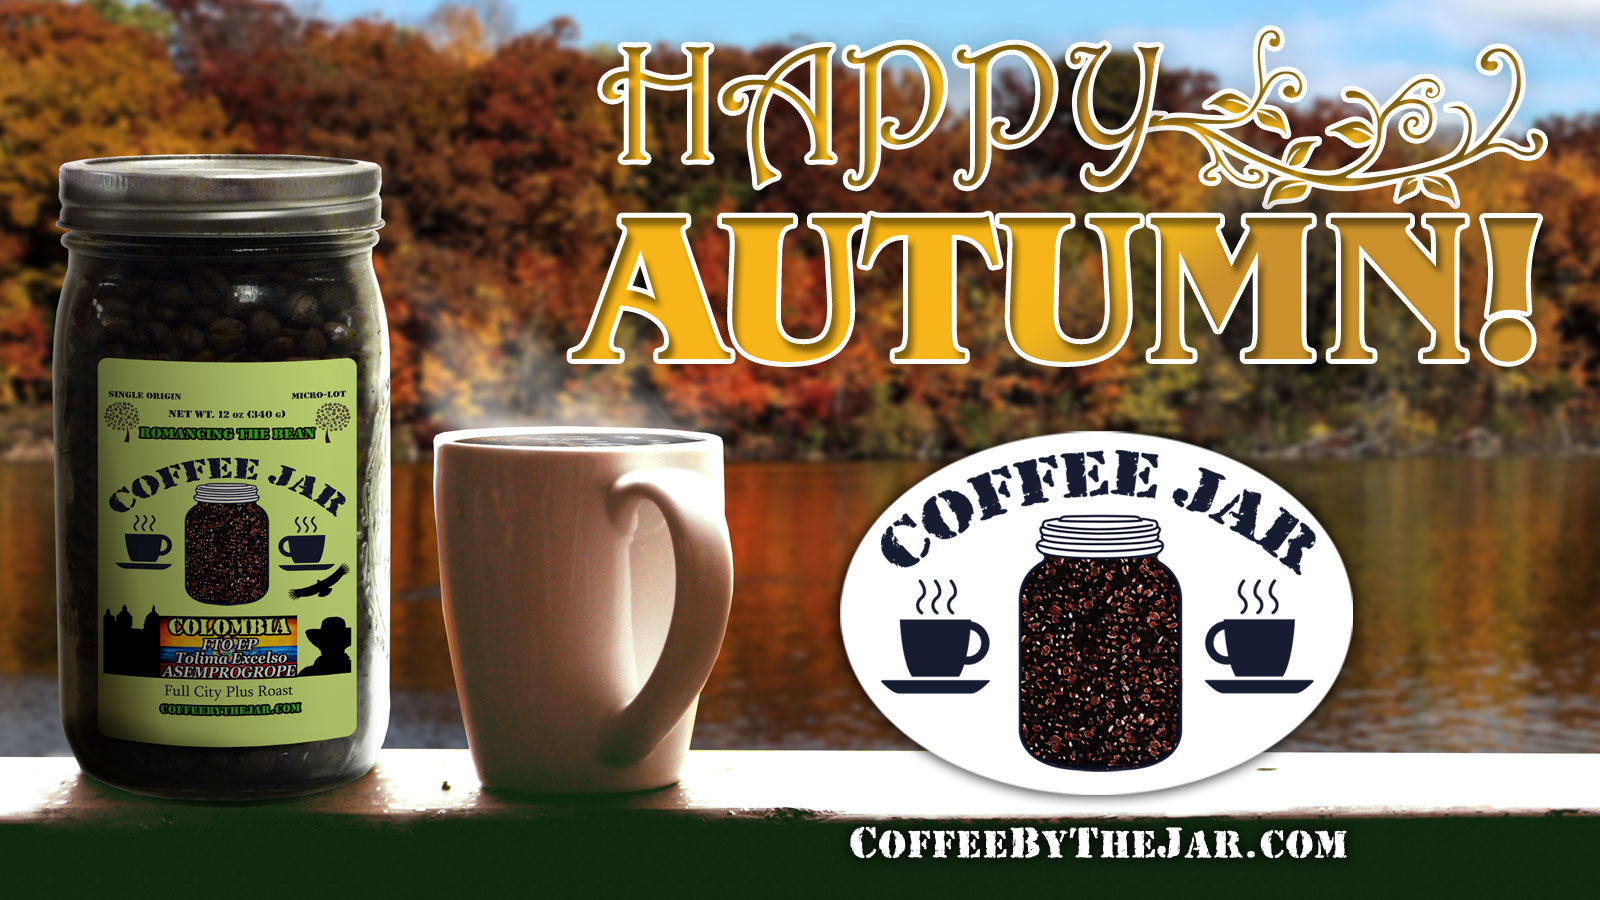 Coffee-Jar-Happy-Autumn-wallpaper02-1600x900